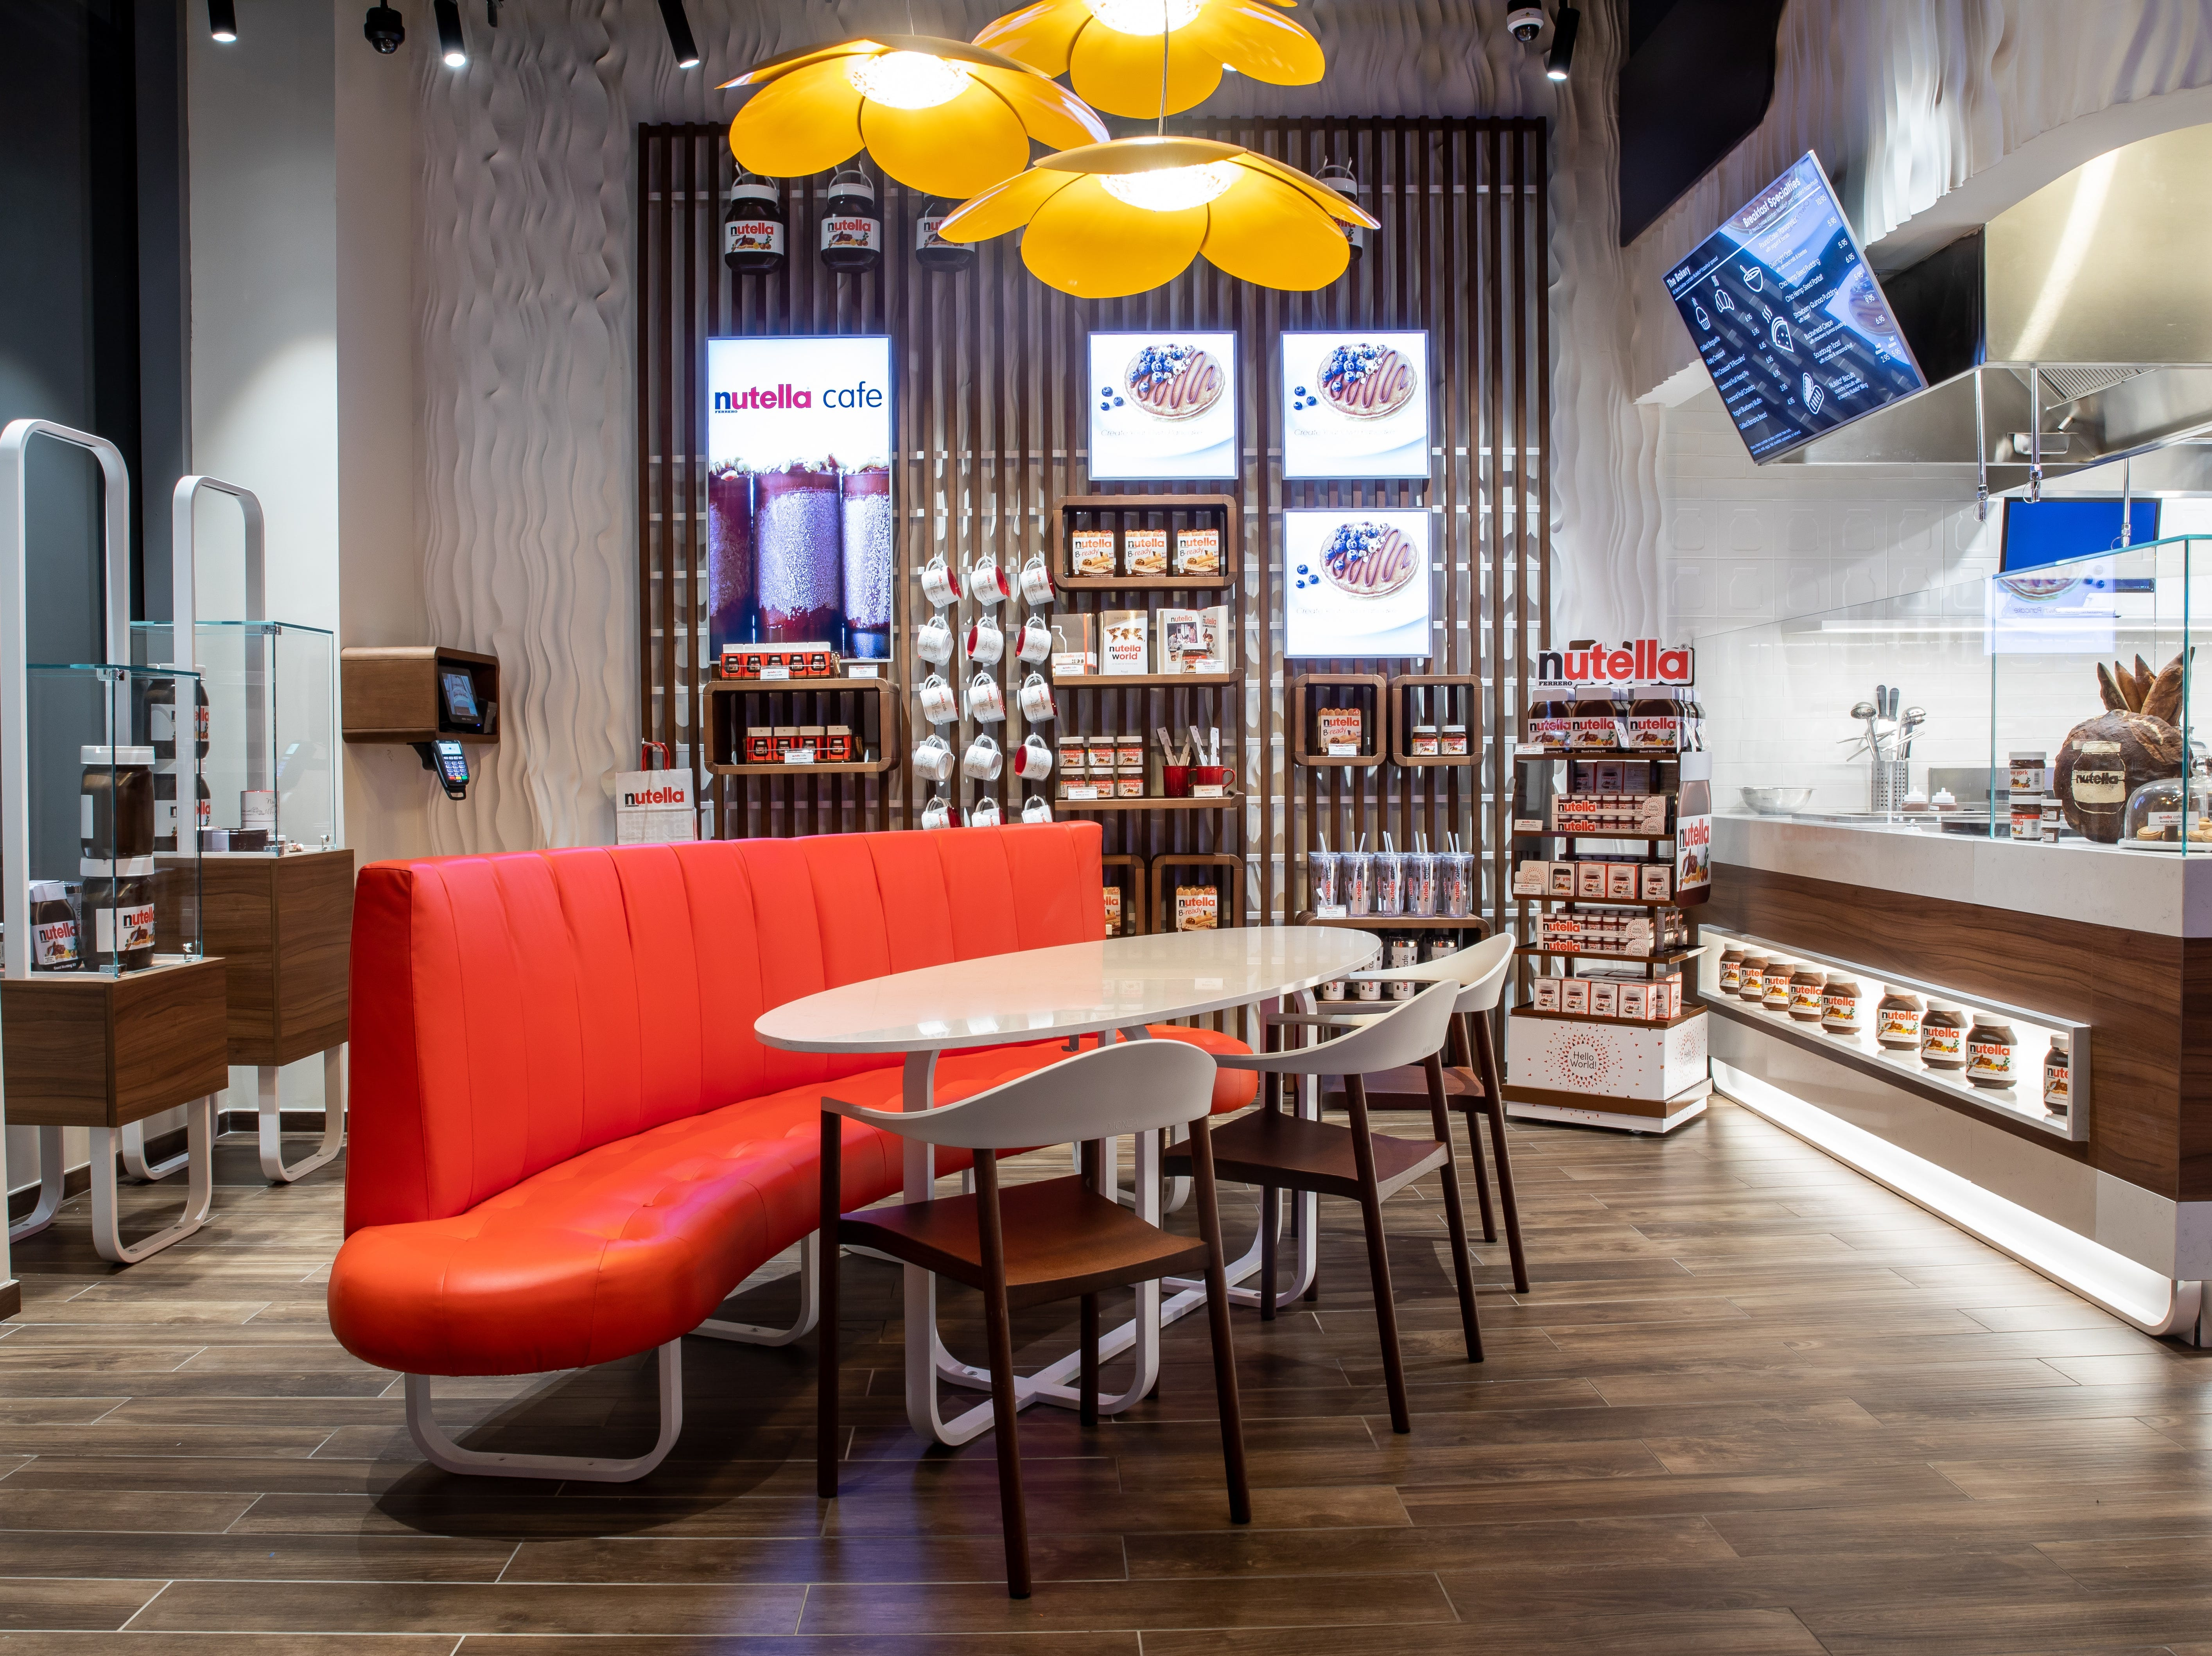 Inside the new Nutella Cafe, which opened Nov. 14 near Union Square in Manhattan.